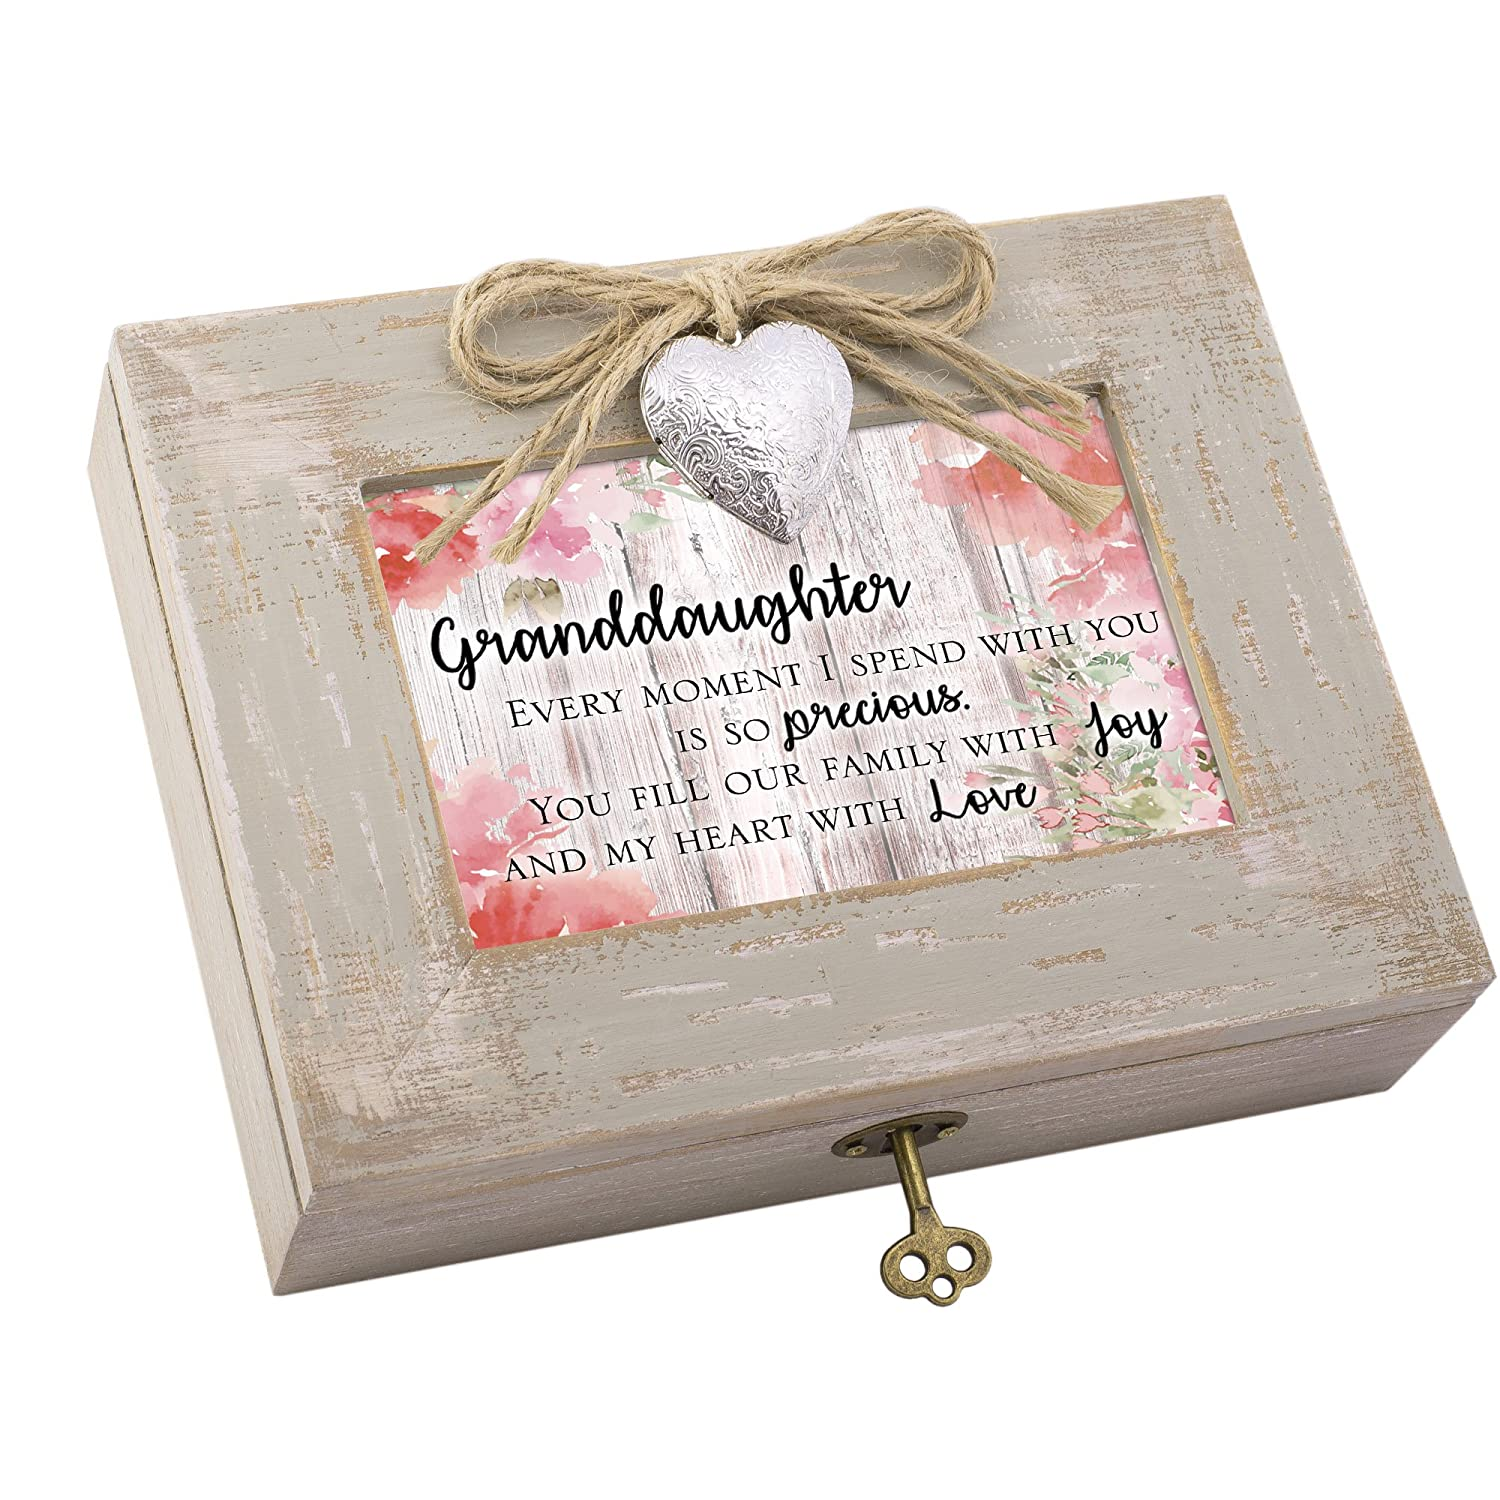 Cottage Garden Granddaughter Fill Heart with Love Natural Taupe Wood Locket Music Box Plays Edelweiss